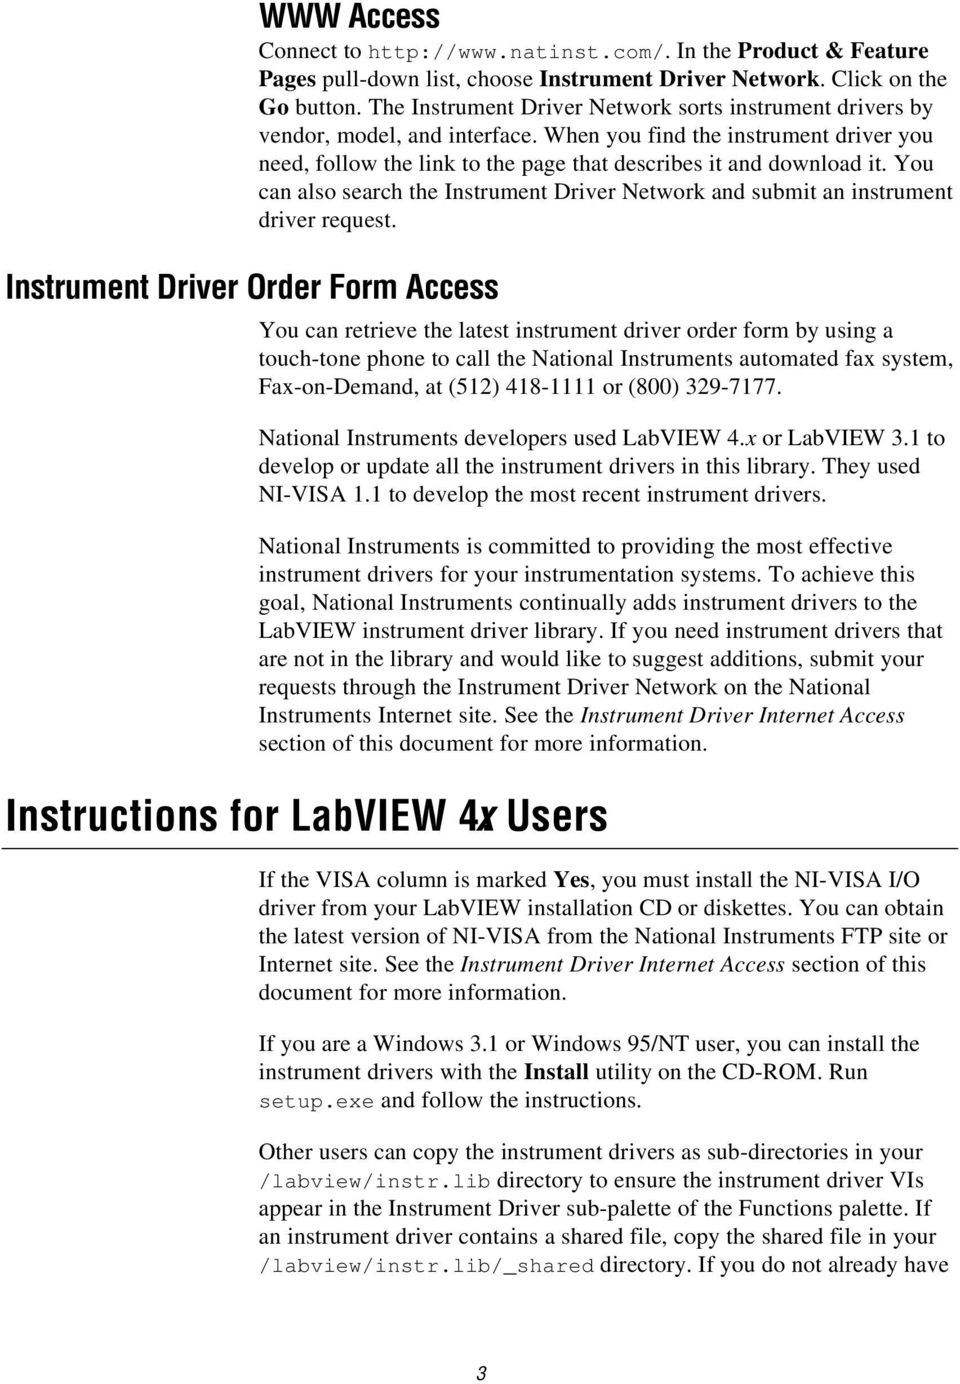 LABVIEW INSTRUMENT DRIVER LIBRARY LIST - PDF